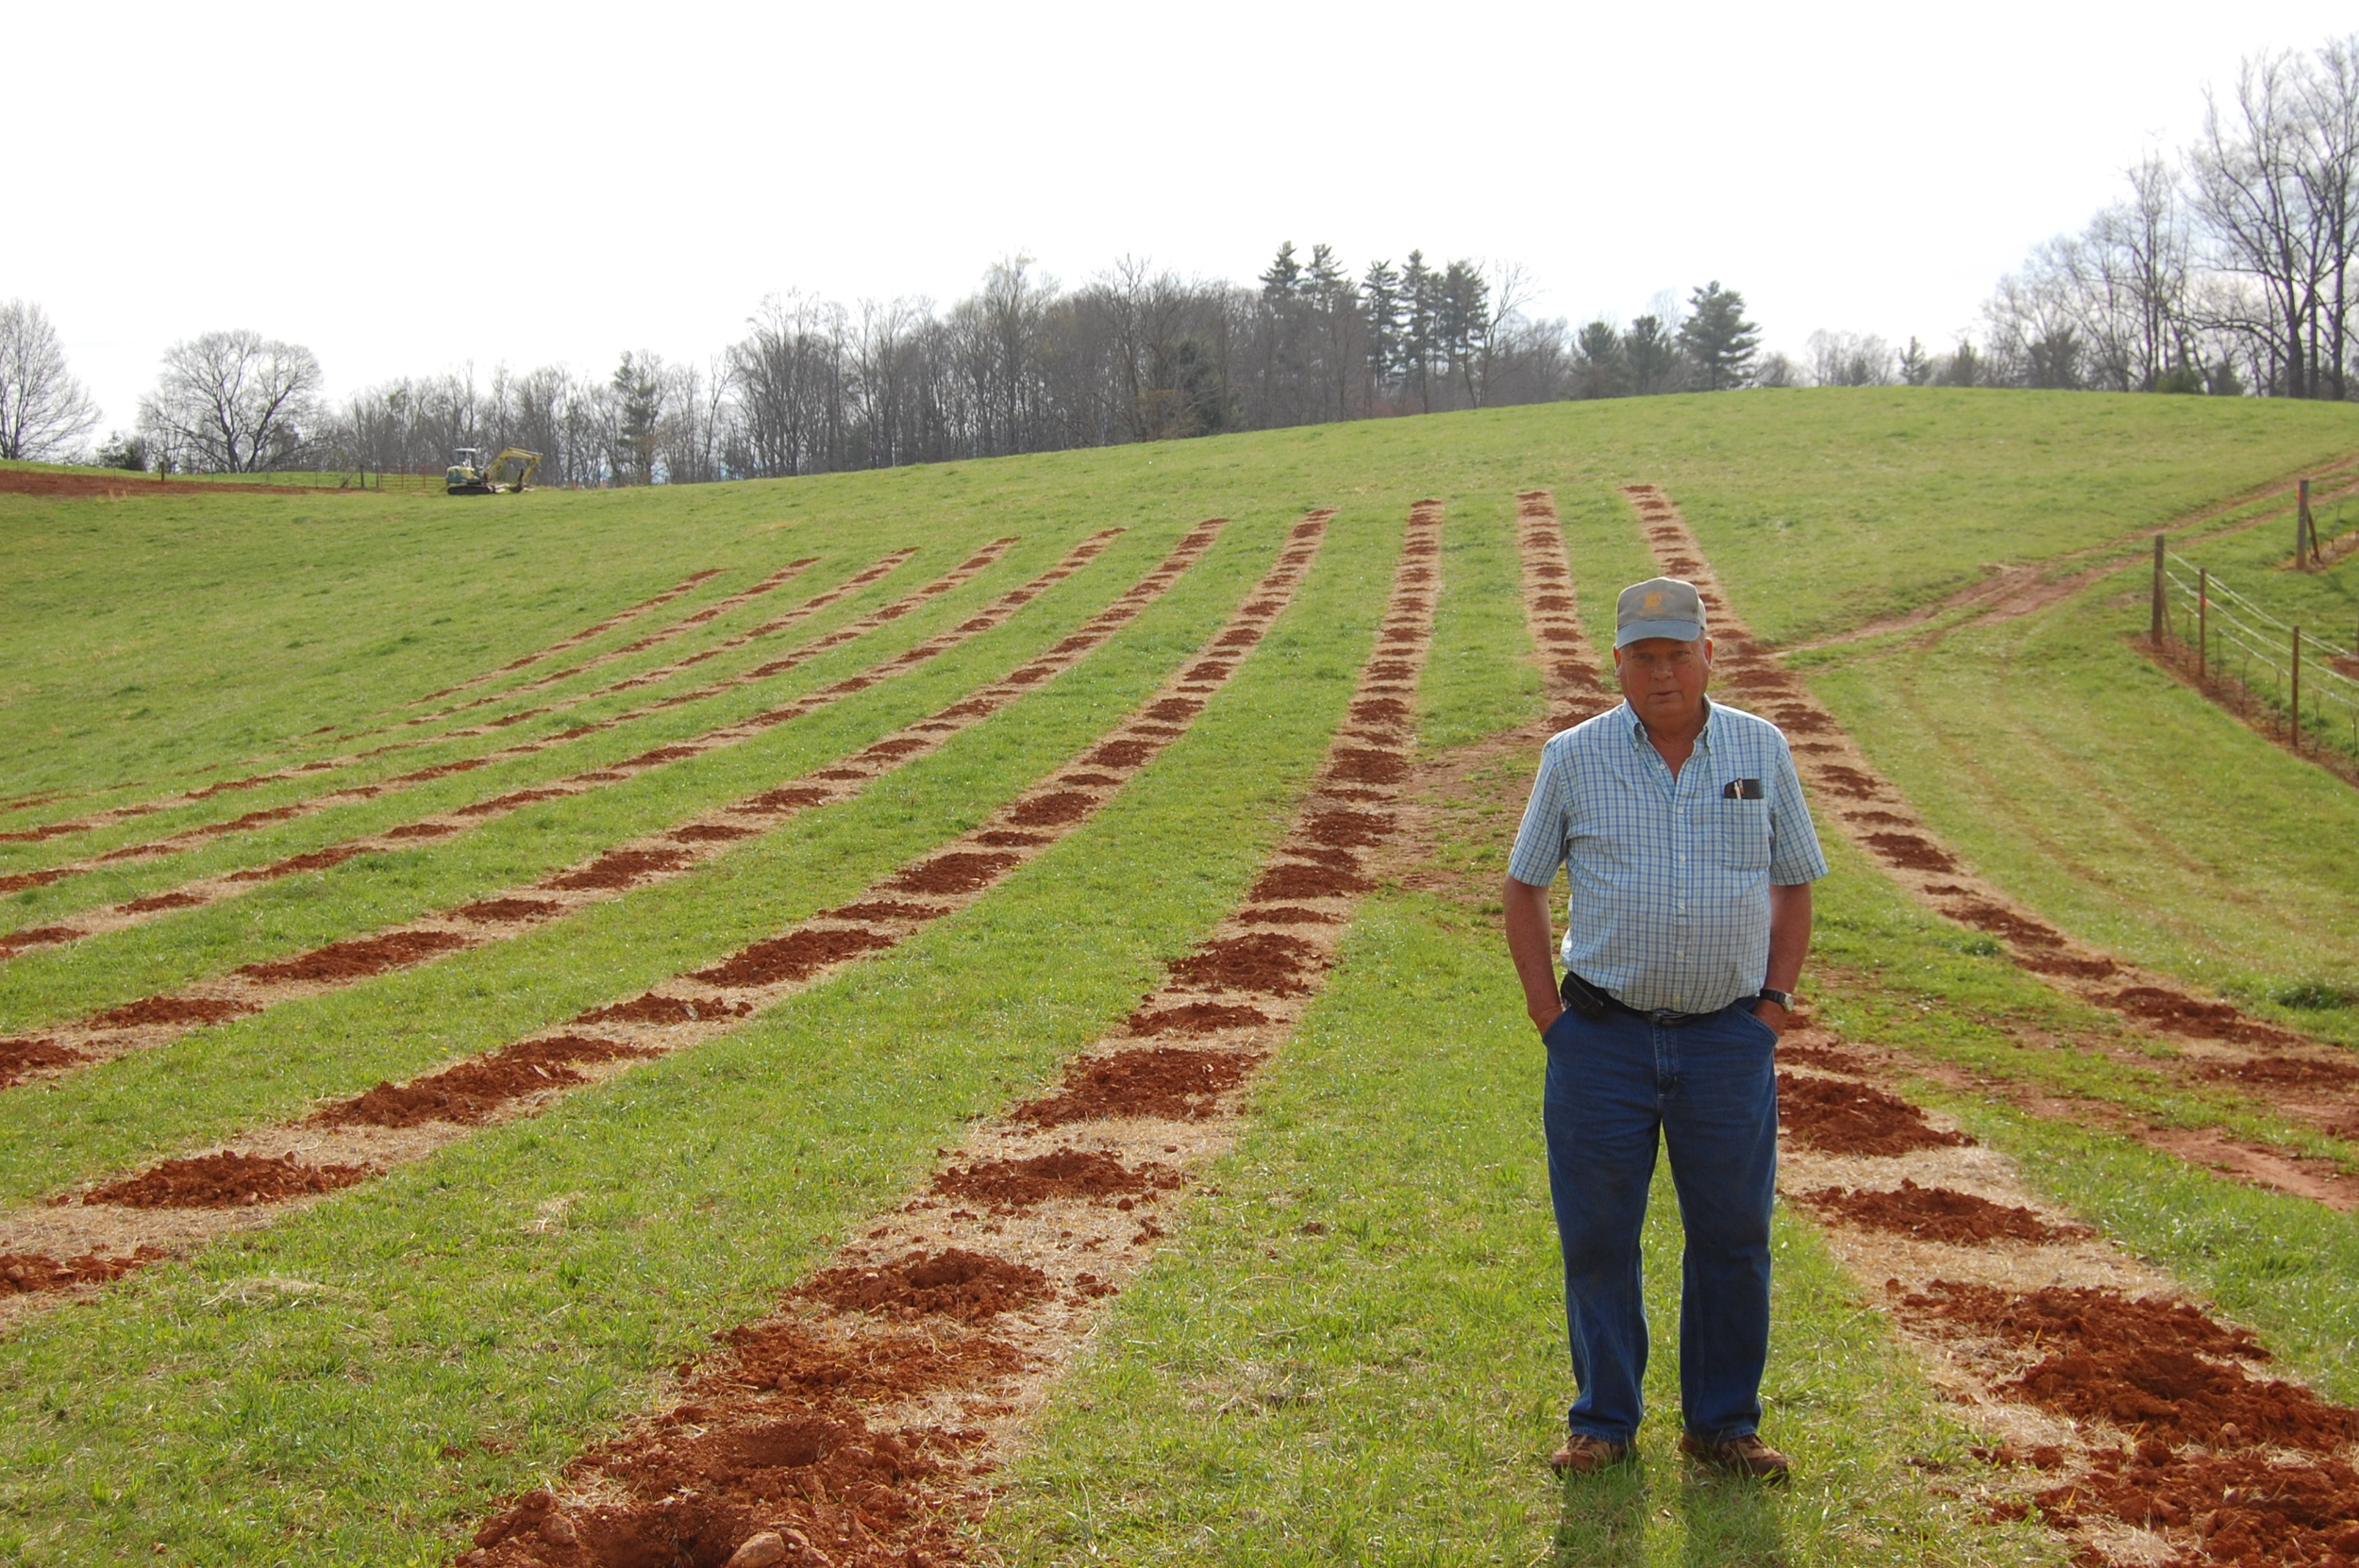 Eddie looking at the new section of the vineyard, pre-planting 2014